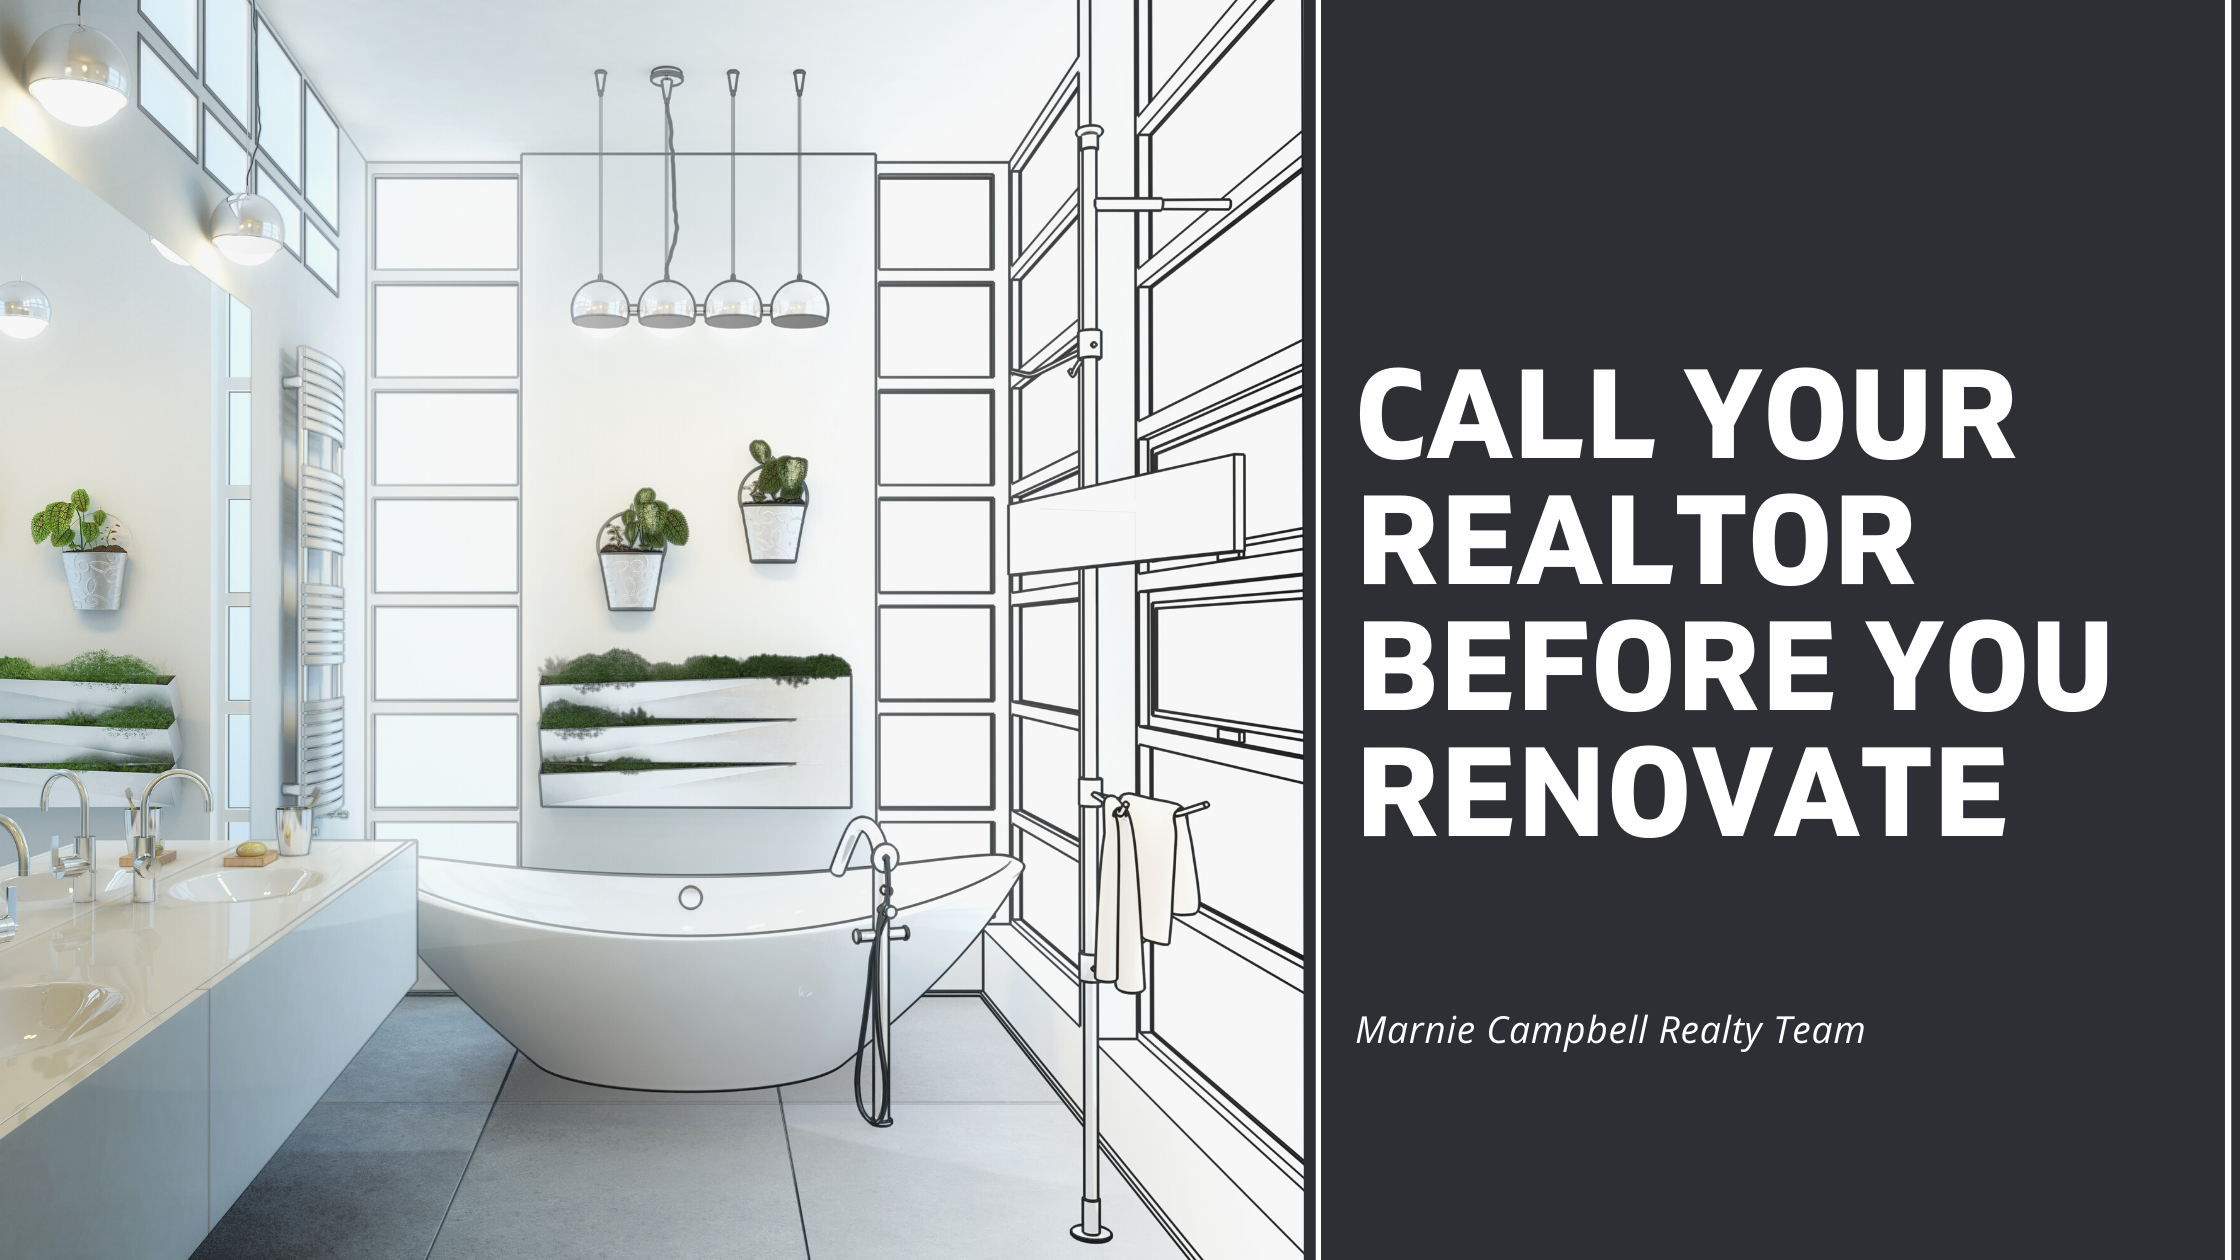 Call Your Realtor Before You Renovate